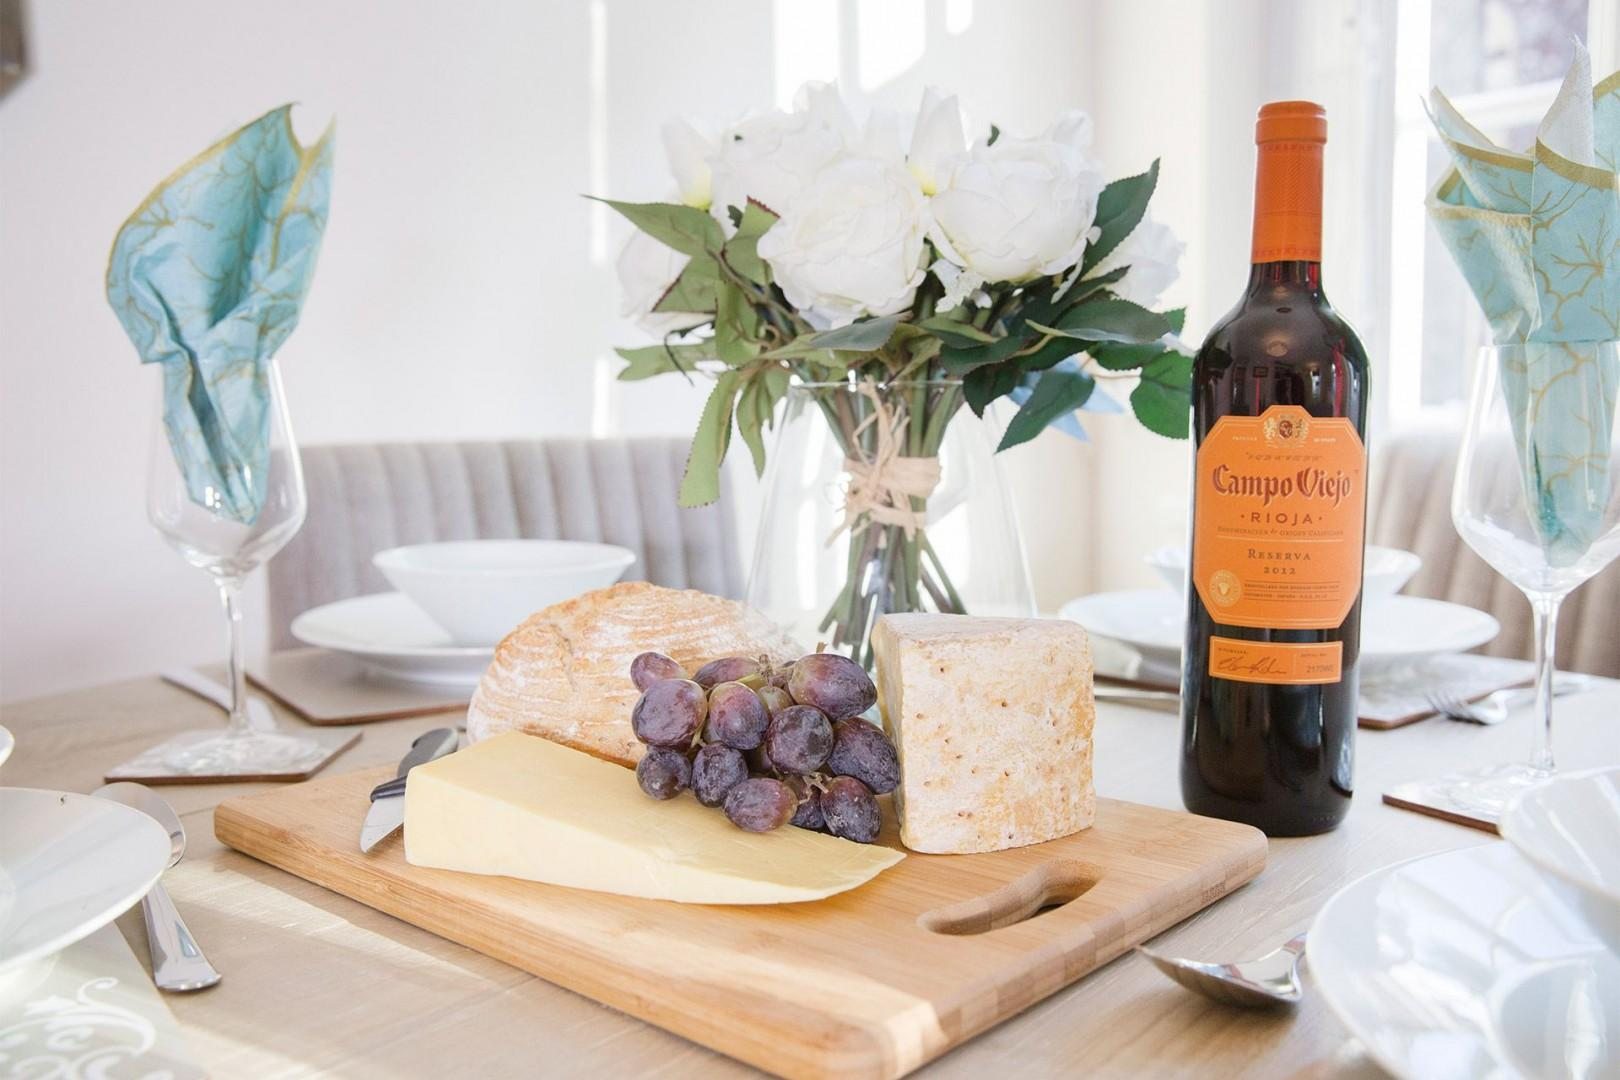 Enjoy some local cheeses and a good bottle of wine